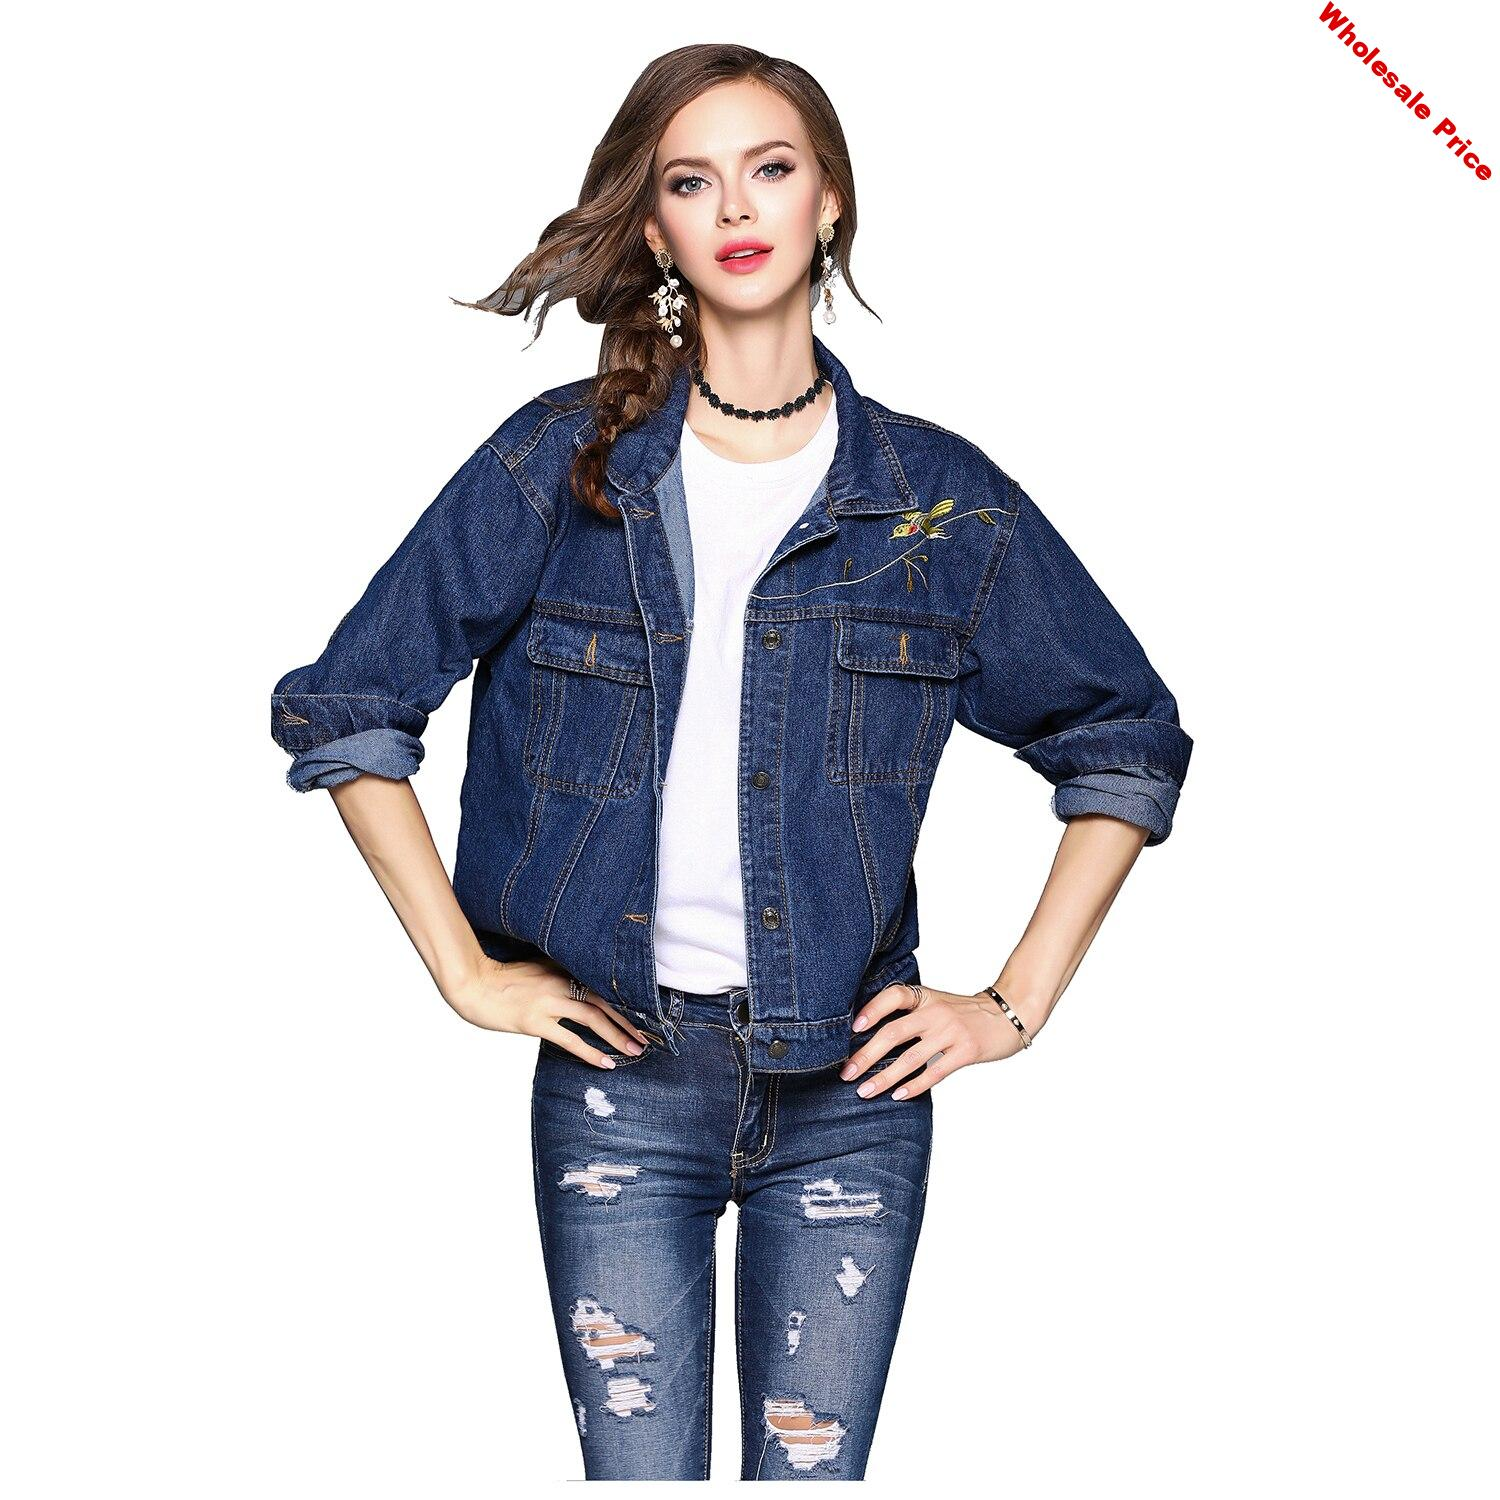 Women's New Fashion Long Sleeve Jacket Spring Autumn Turn-down Collar Floral Embroidery Pocket Single Breasted Casual Outwear